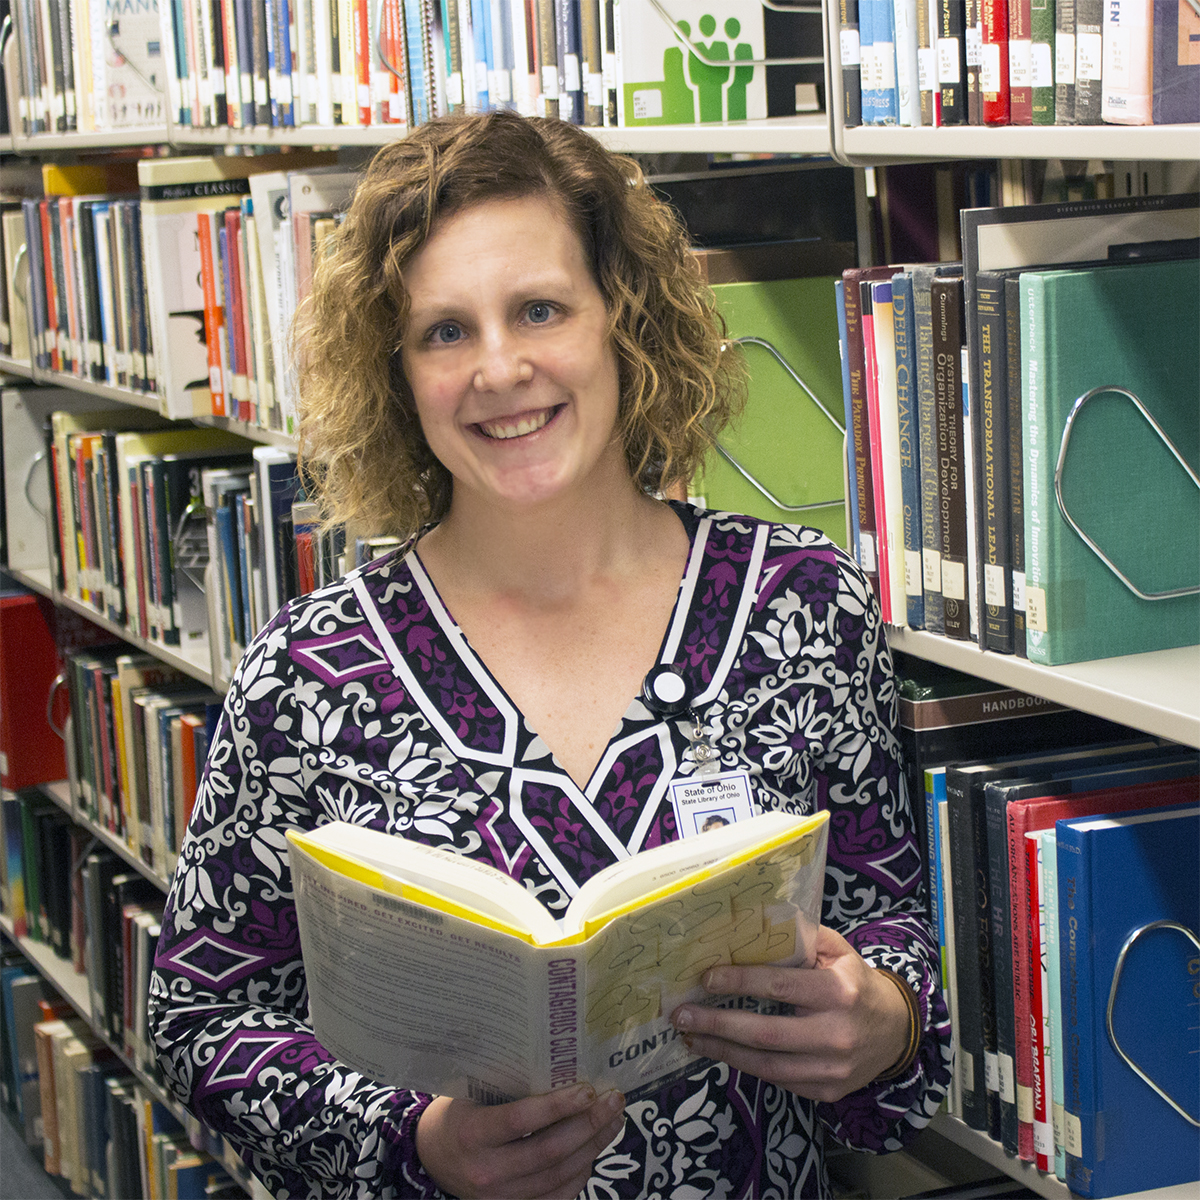 Photograph of Ashleigh Conkey standing in the State Library of Ohio and holding a book.